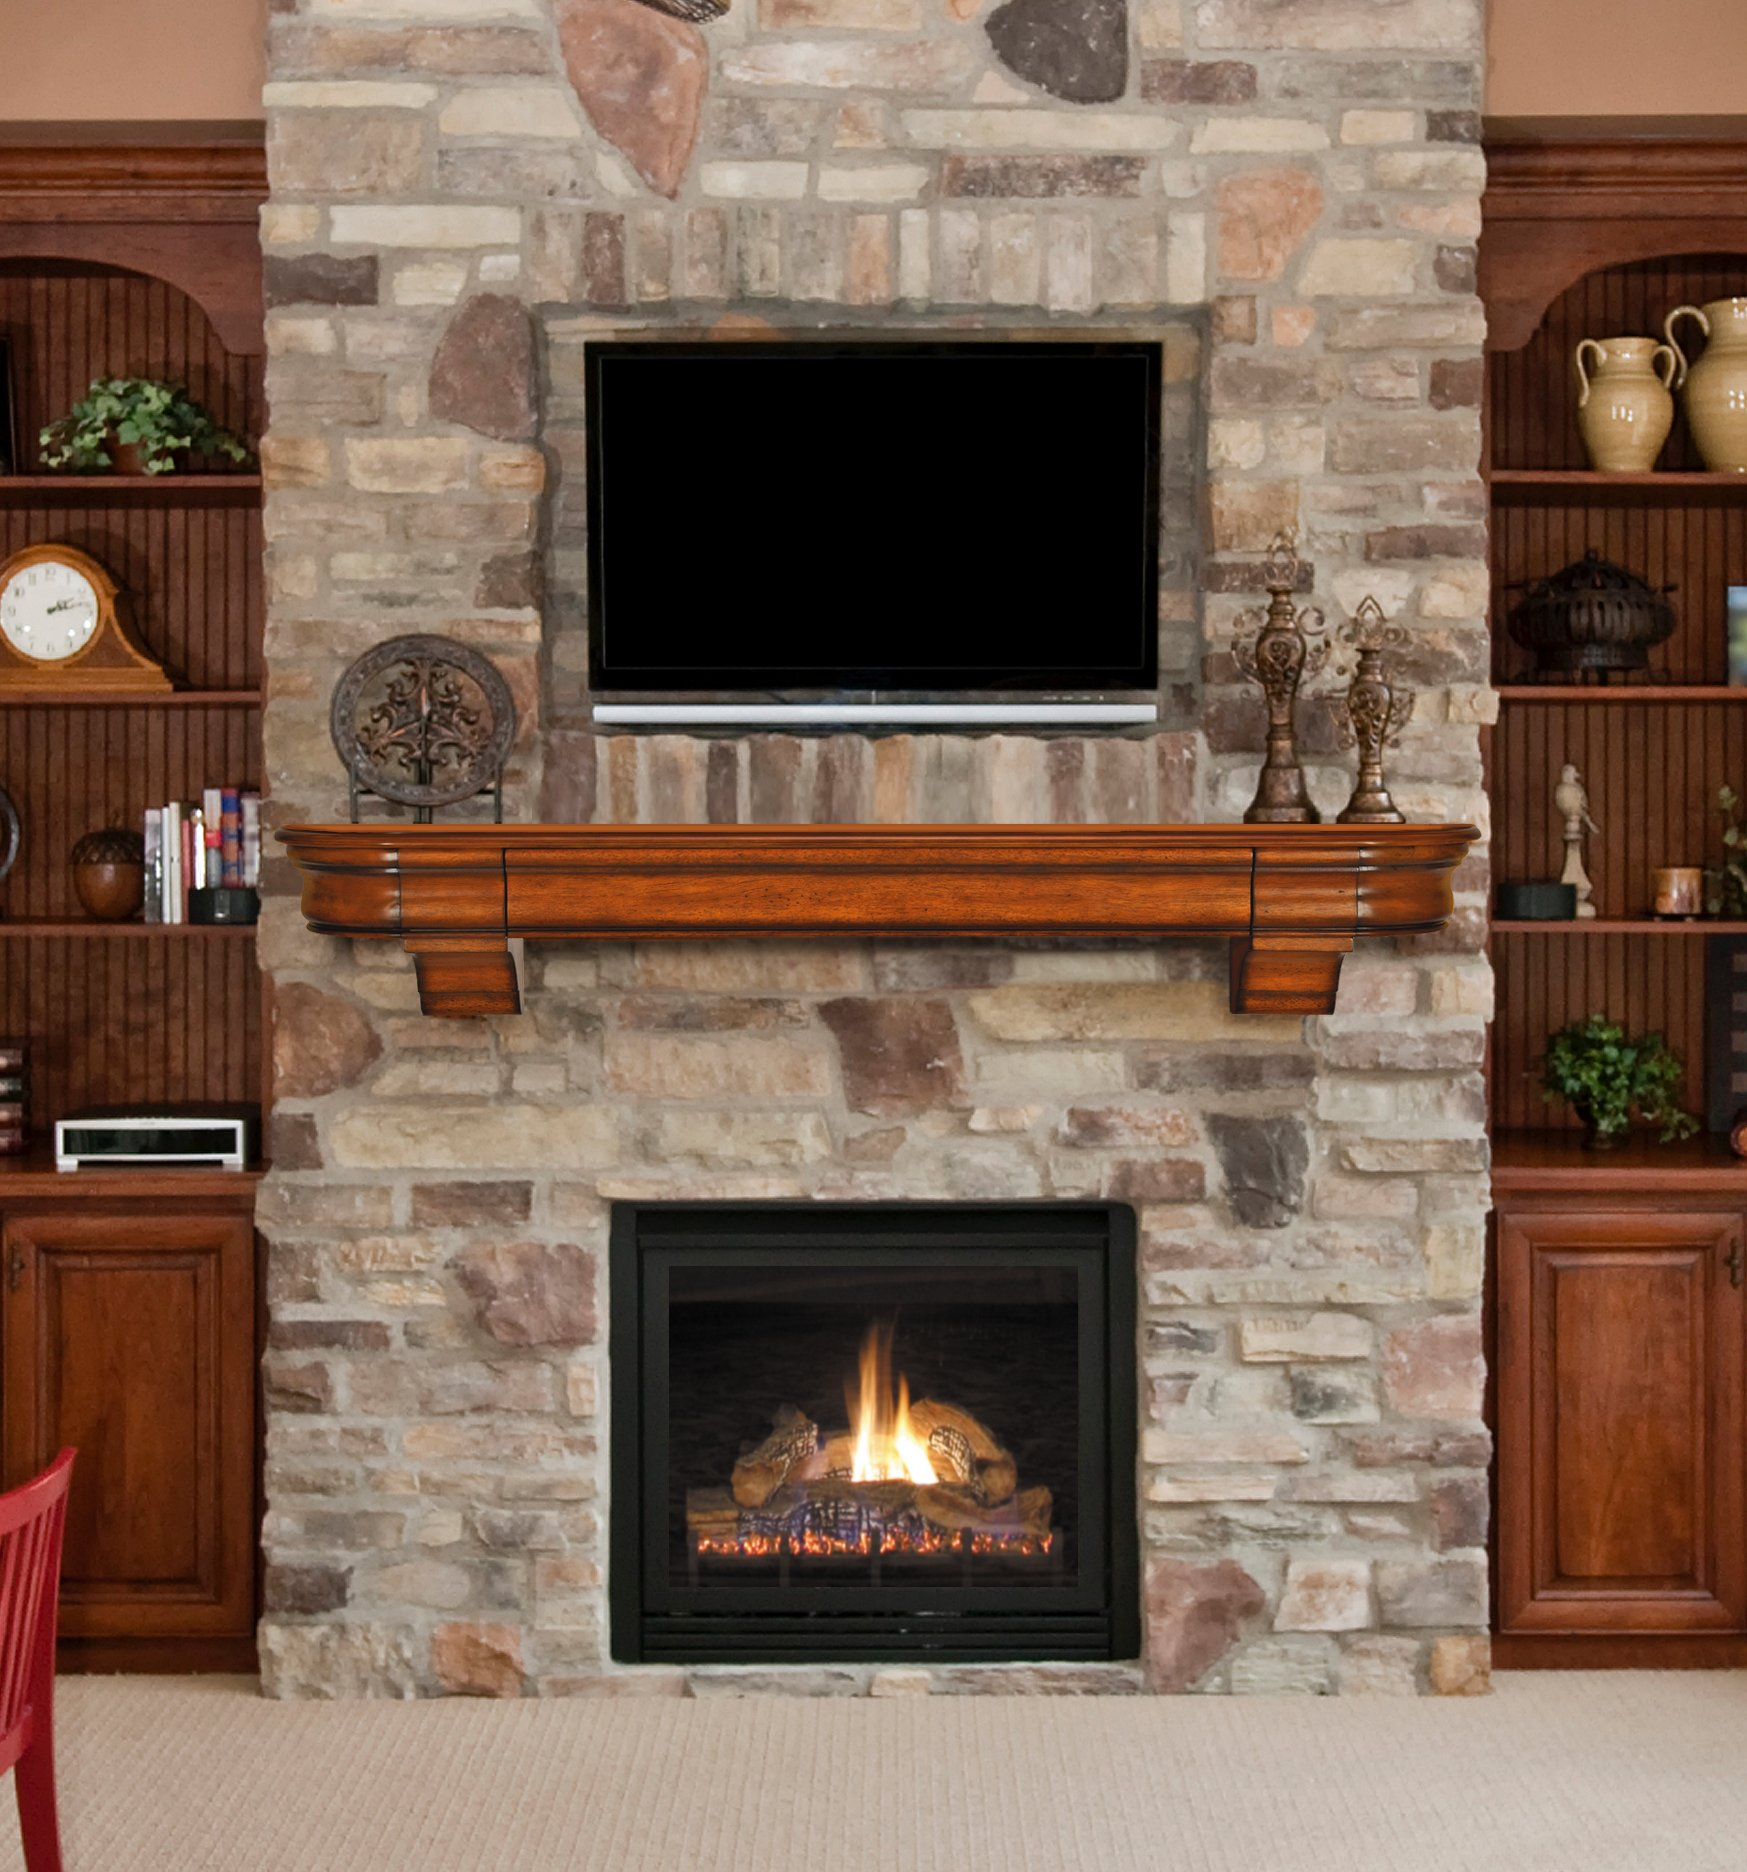 Home Depot Fireplace Mantel | Lowes Fireplace Surround | Lowes Fireplace Mantel